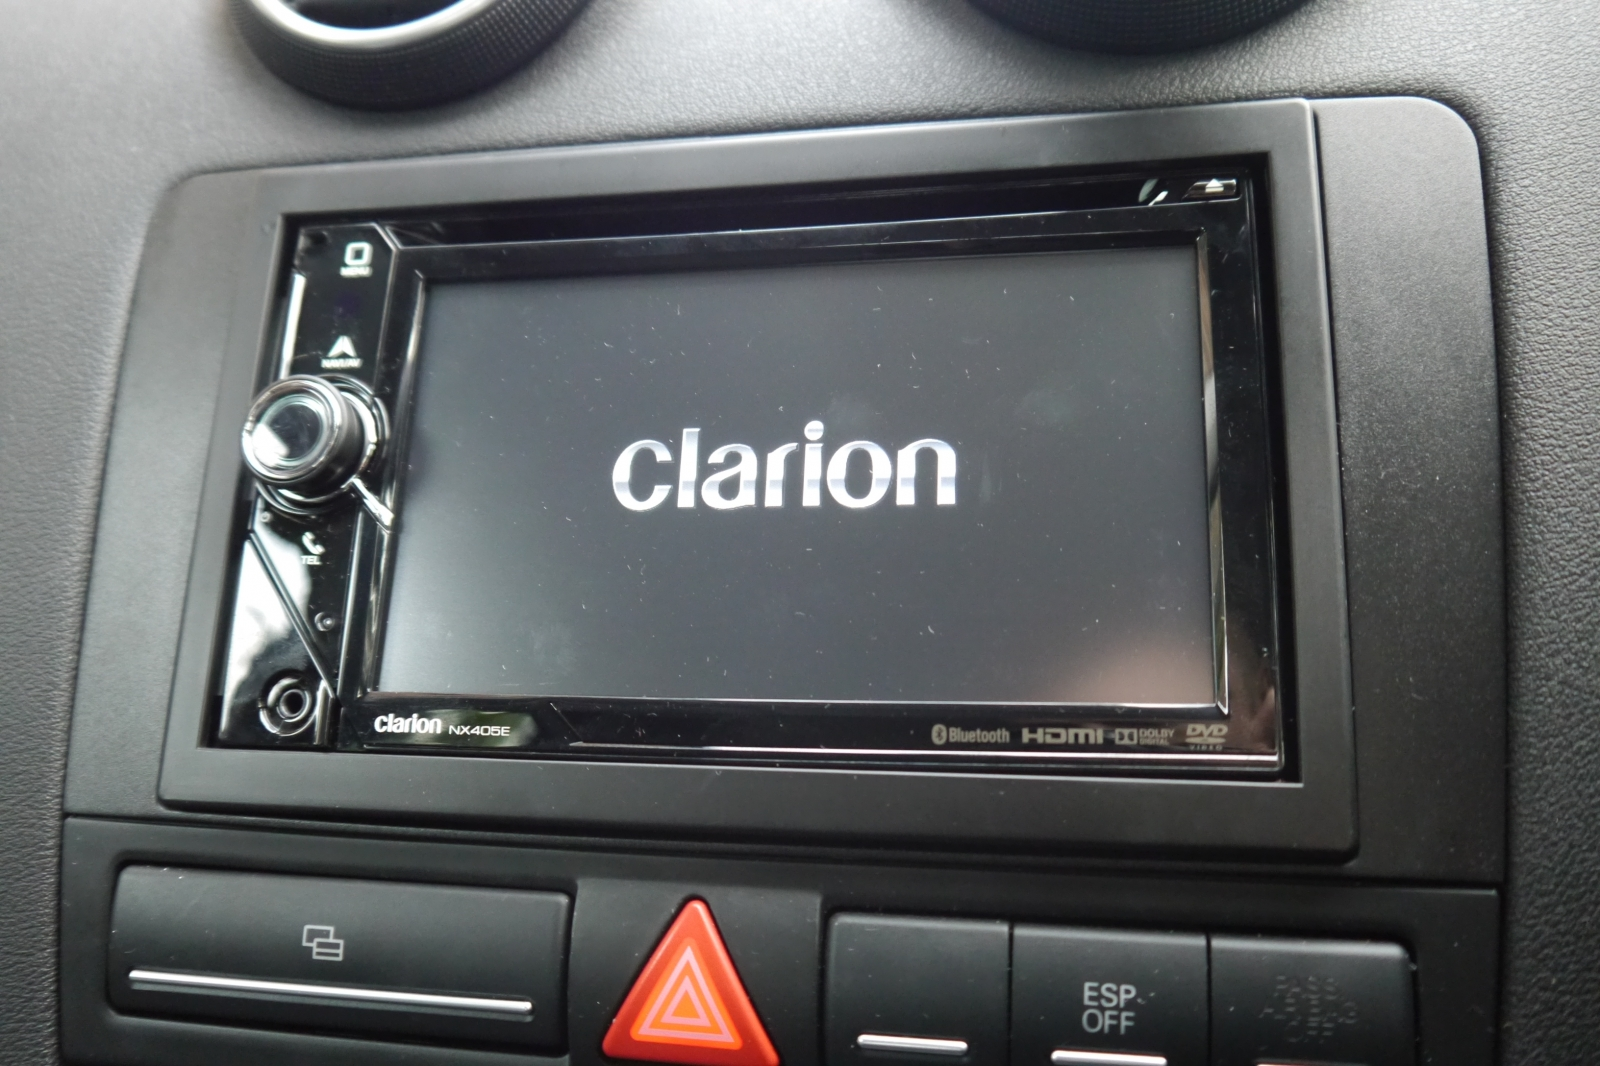 gallery 2007 audi a3 clarion nx405e navigation system reverse camera greater manchester. Black Bedroom Furniture Sets. Home Design Ideas